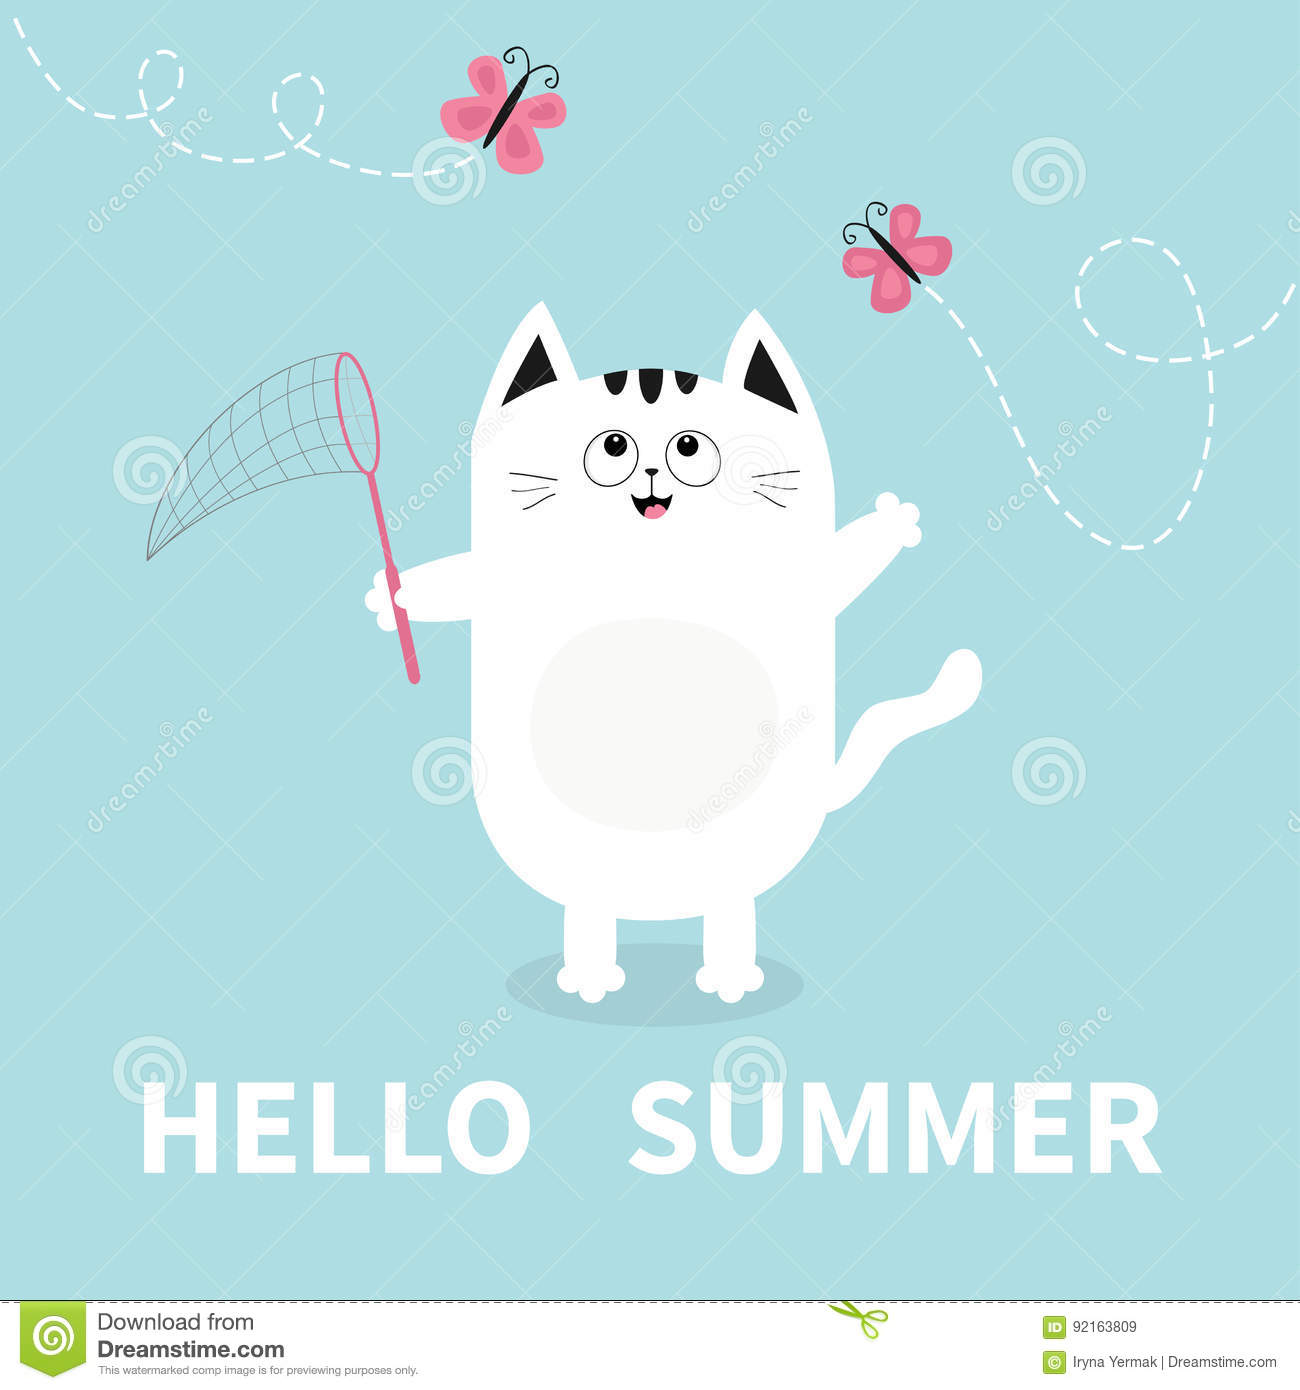 Hello Summer White Cat Pink Butterfly Insect Net Dash Line Track